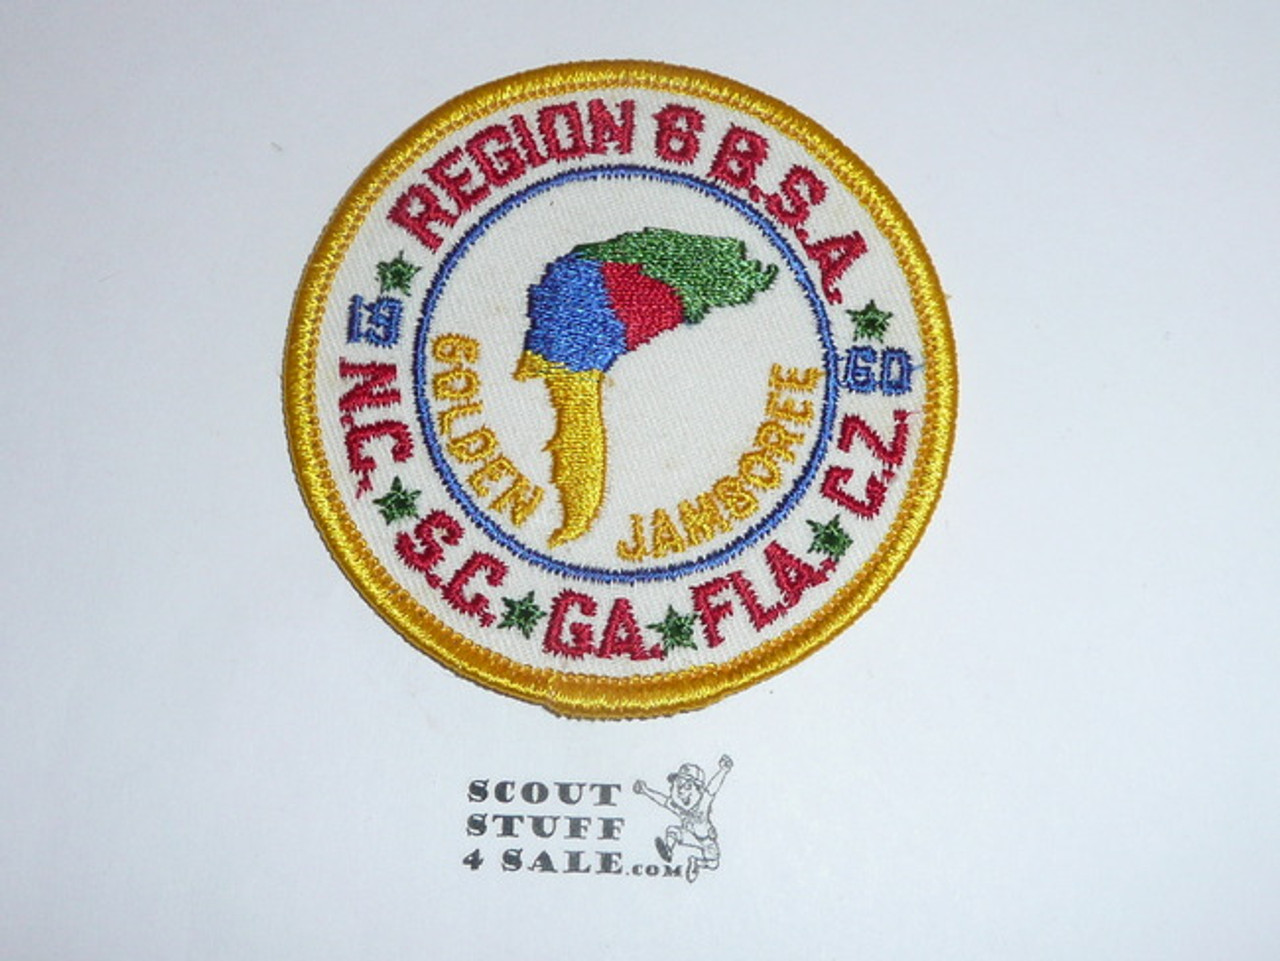 1960 National Jamboree Region 6 Patch